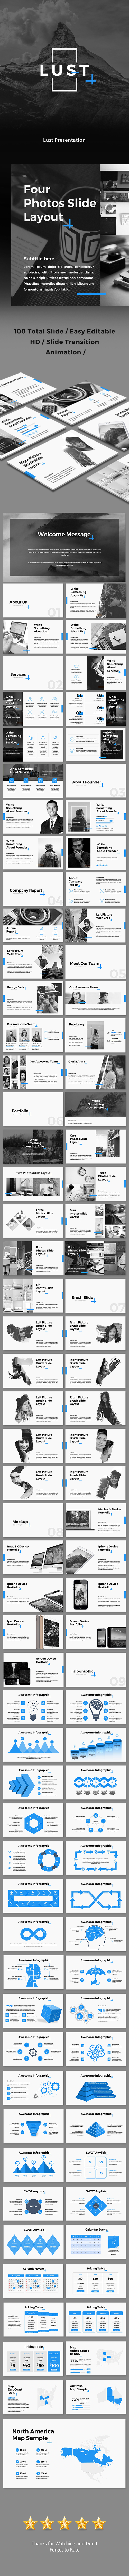 GraphicRiver Lust Powerpoint 20903060